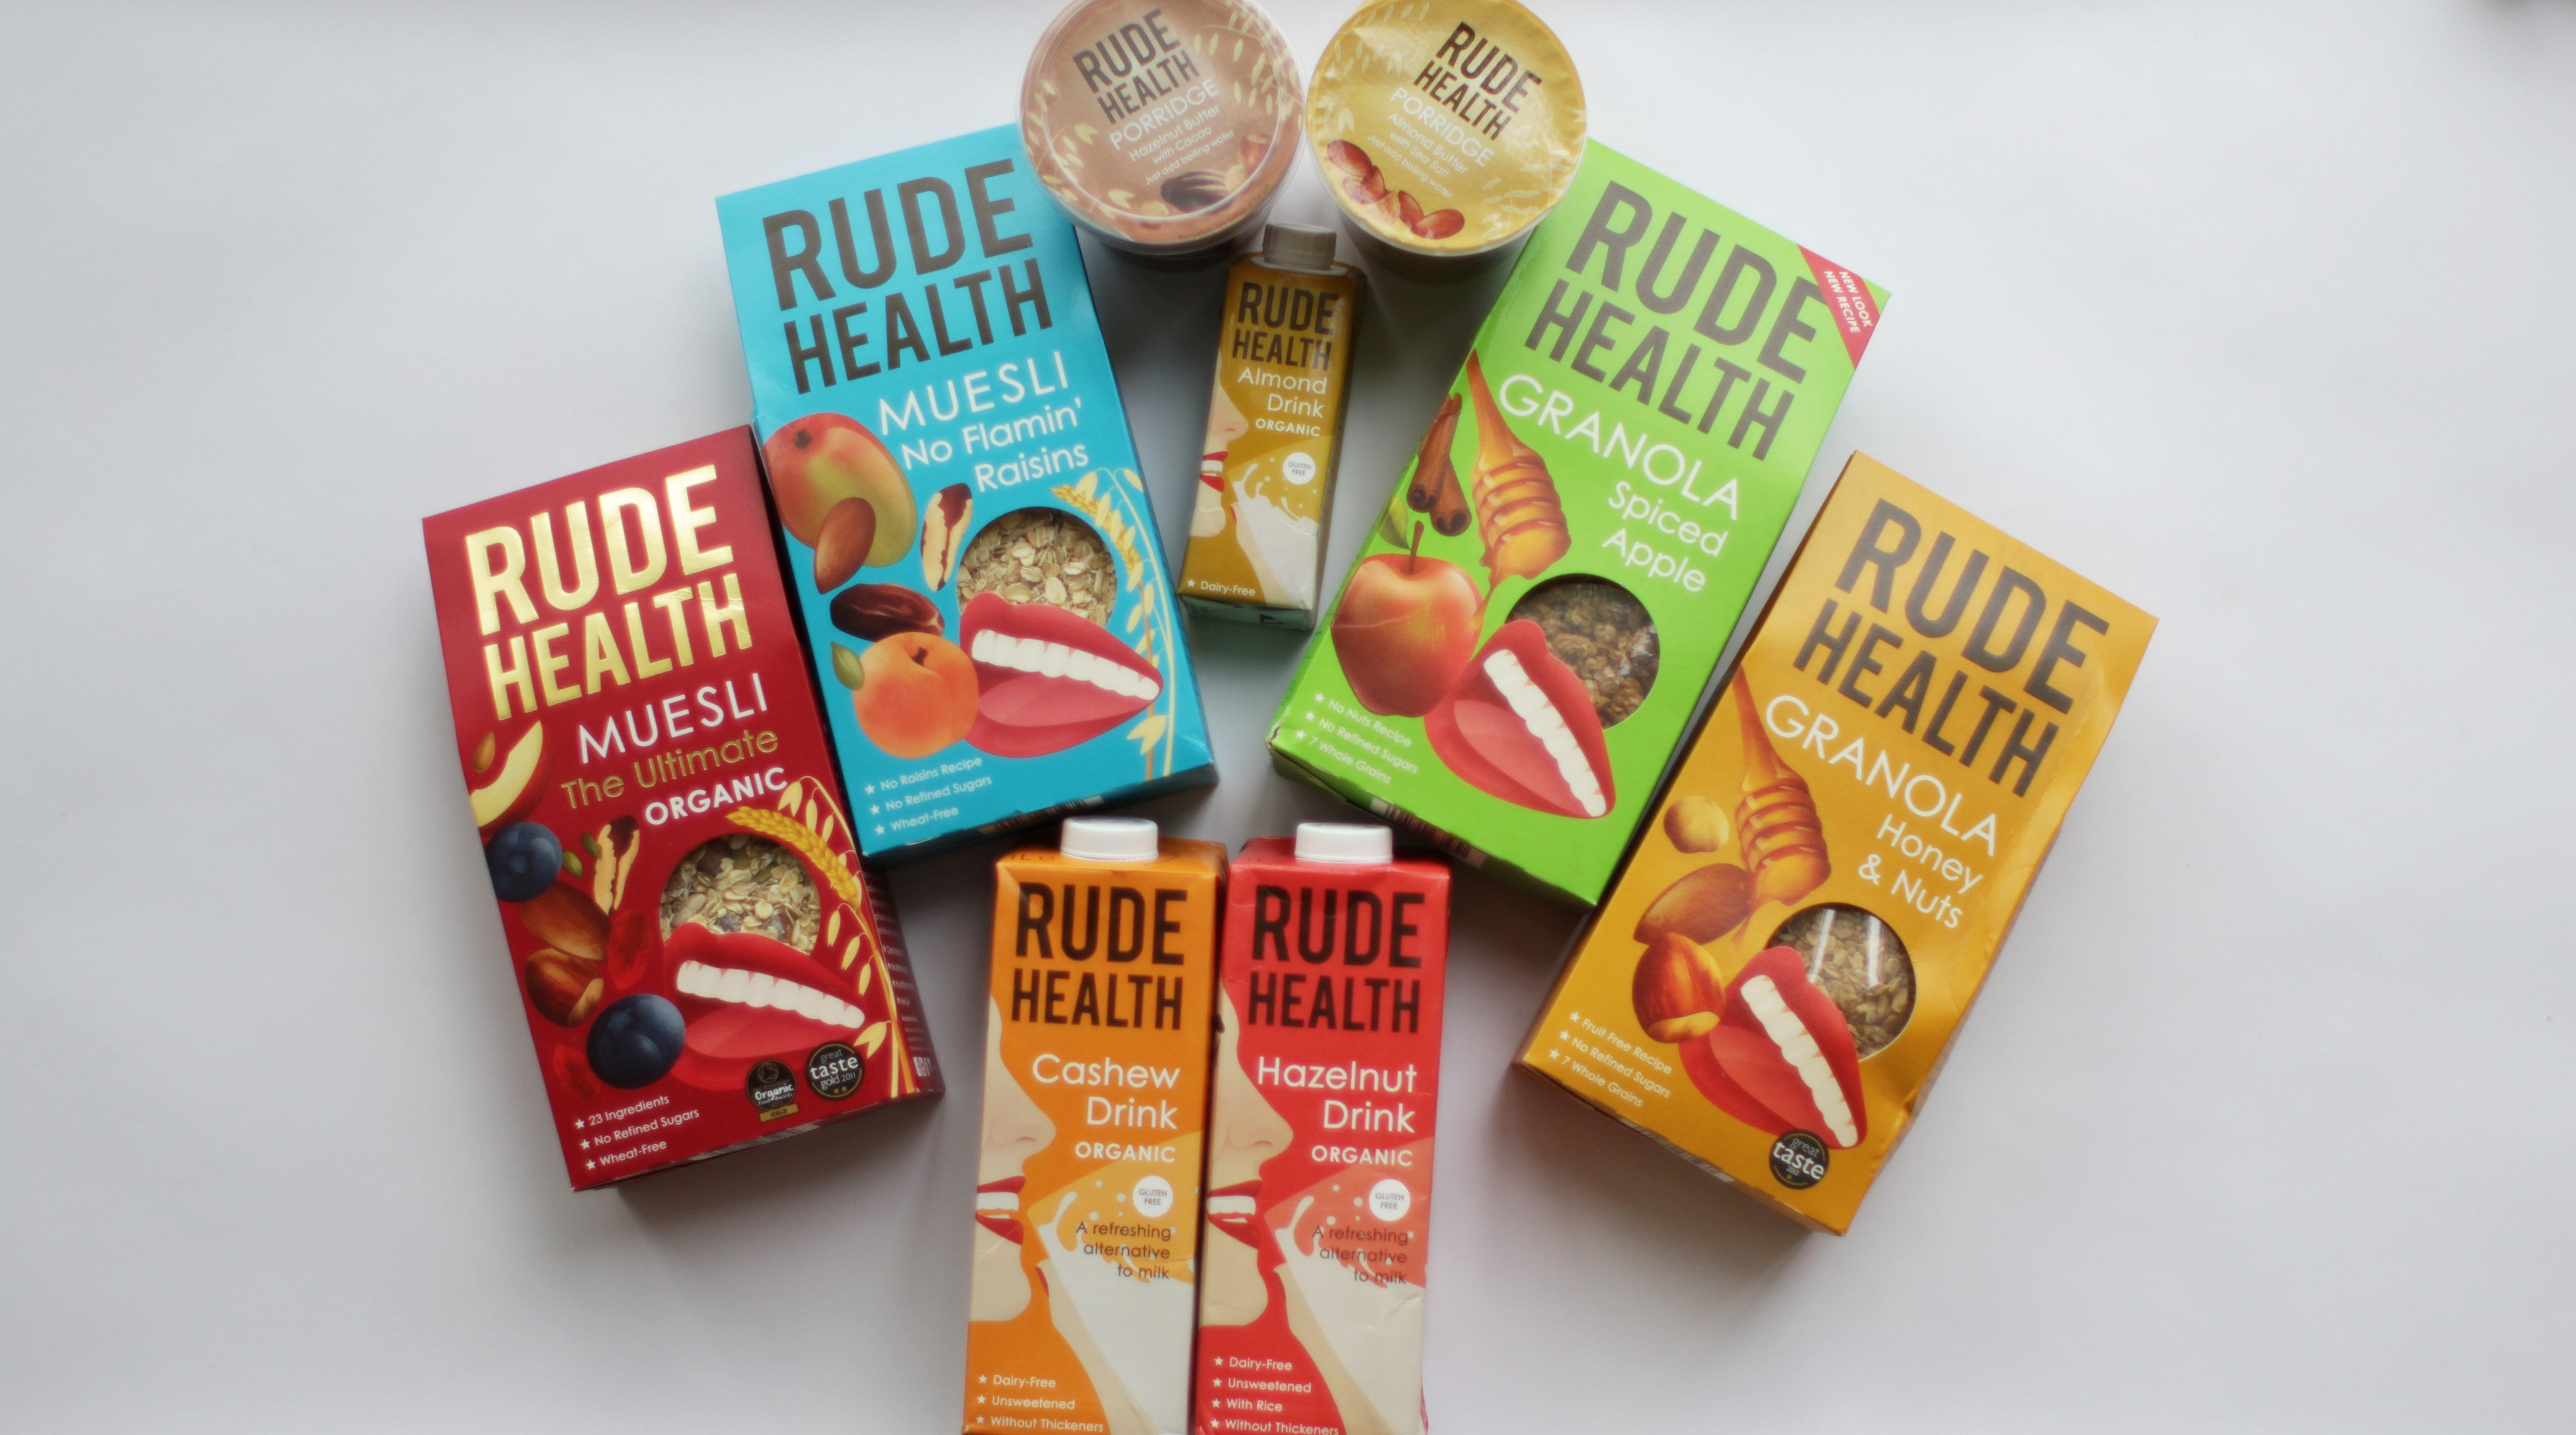 Rude Health Sundried Product Review